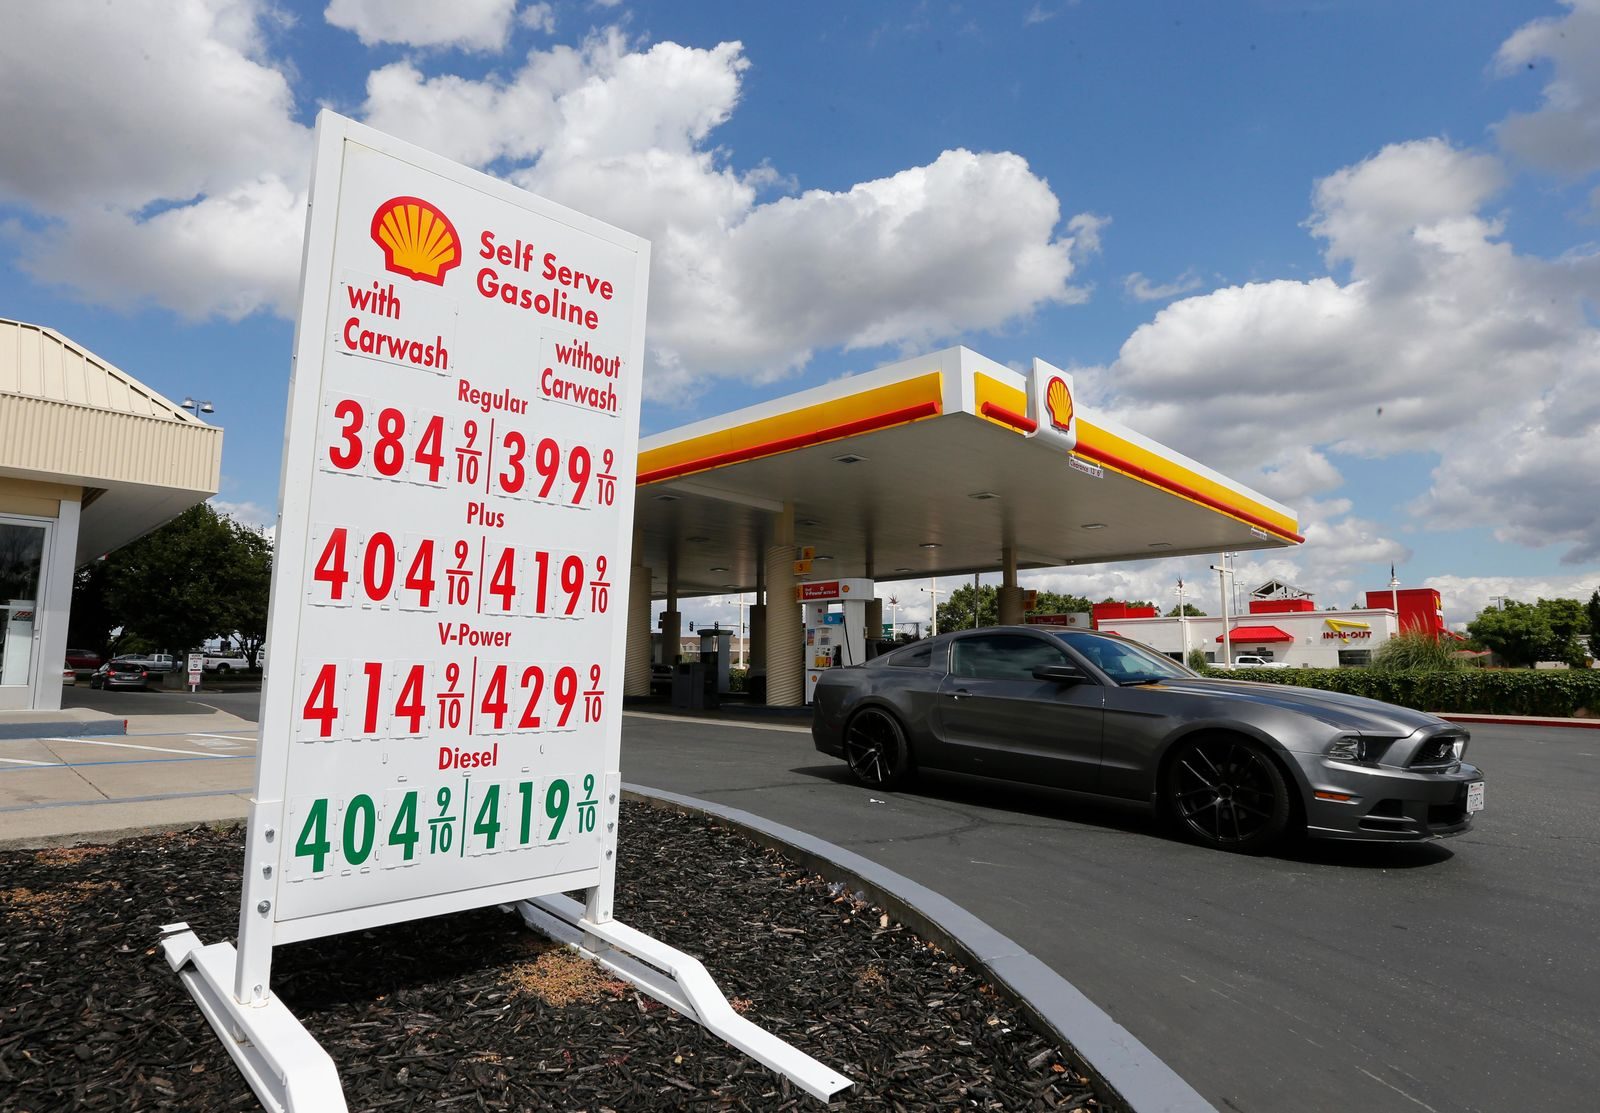 In this photo taken Friday, May 17, 2019, a car leaves a Shell station after getting gas in Sacramento, Calif. California's gas prices are set to climb July 1 when the state's gas tax climbs another 5.6 cents a gallon. The rise in the gas tax is just one of the new laws taking effect July 1. (AP Photo/Rich Pedroncelli)